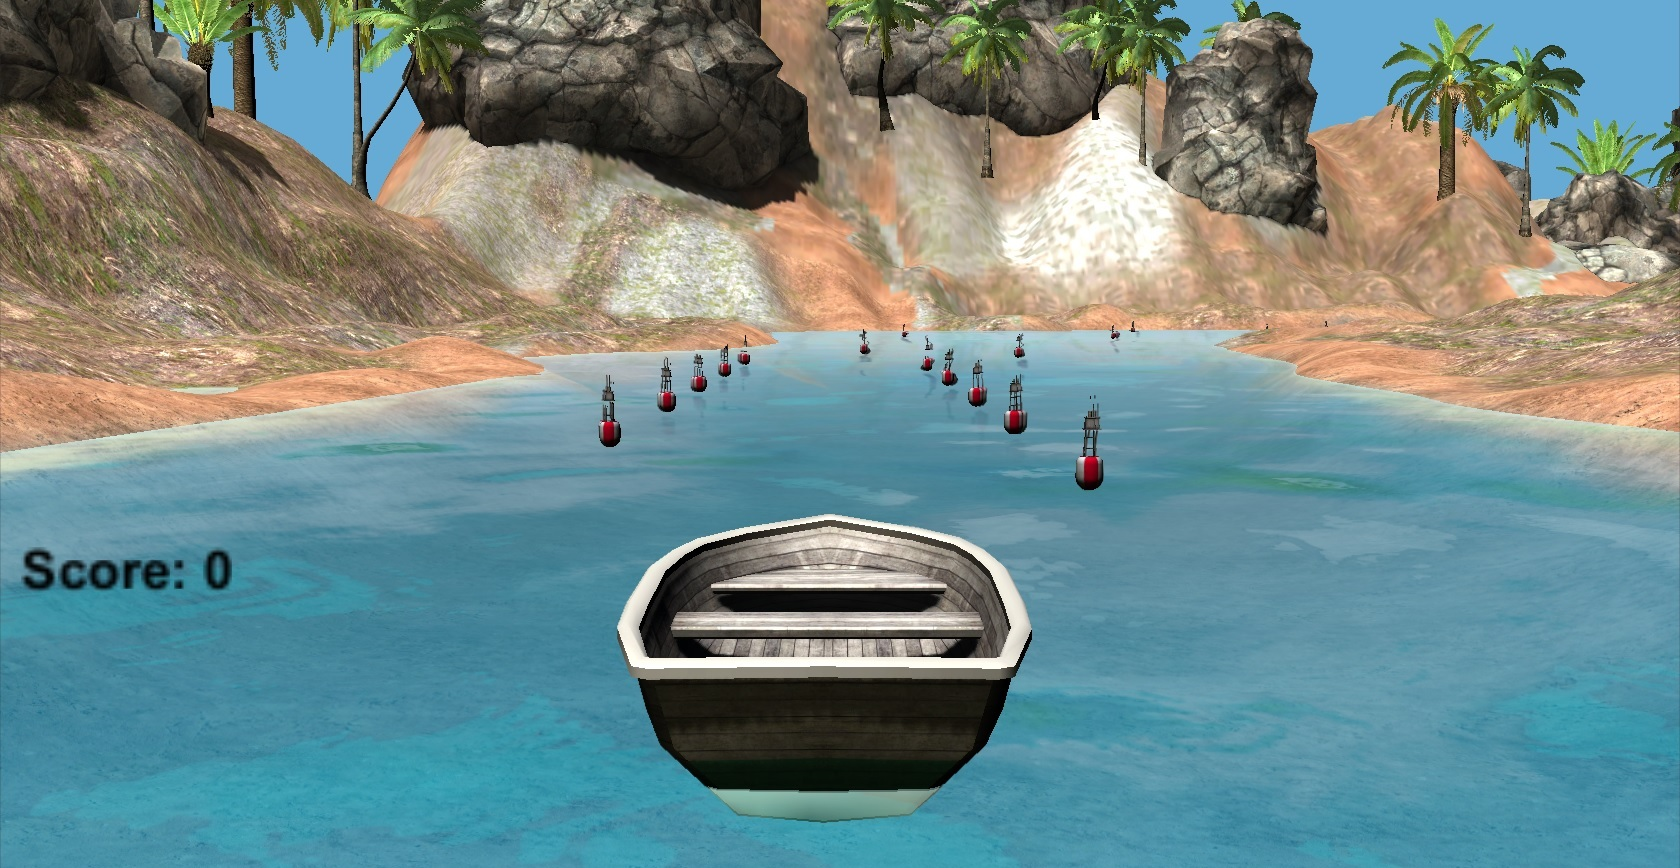 Kinect virtual therapy training game